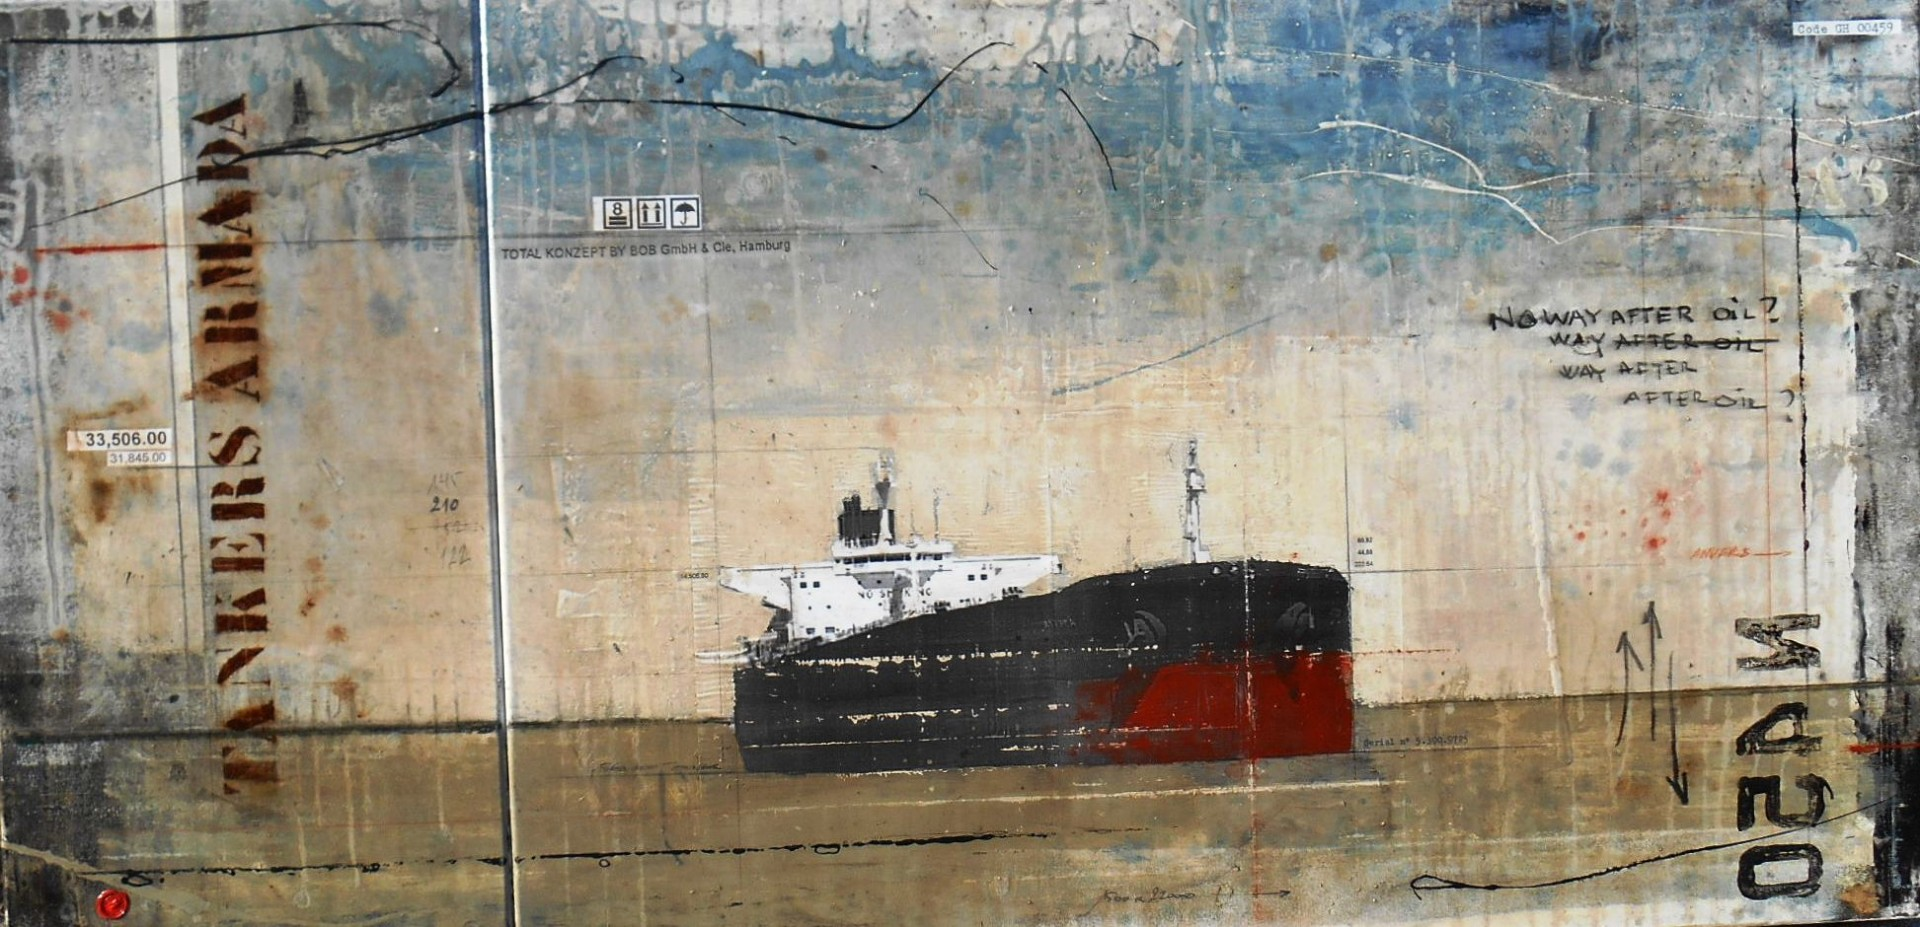 After Oil - Tankers Armada - collage photo, huile, acrylique sur toile - 80 x 130 cm - 2014